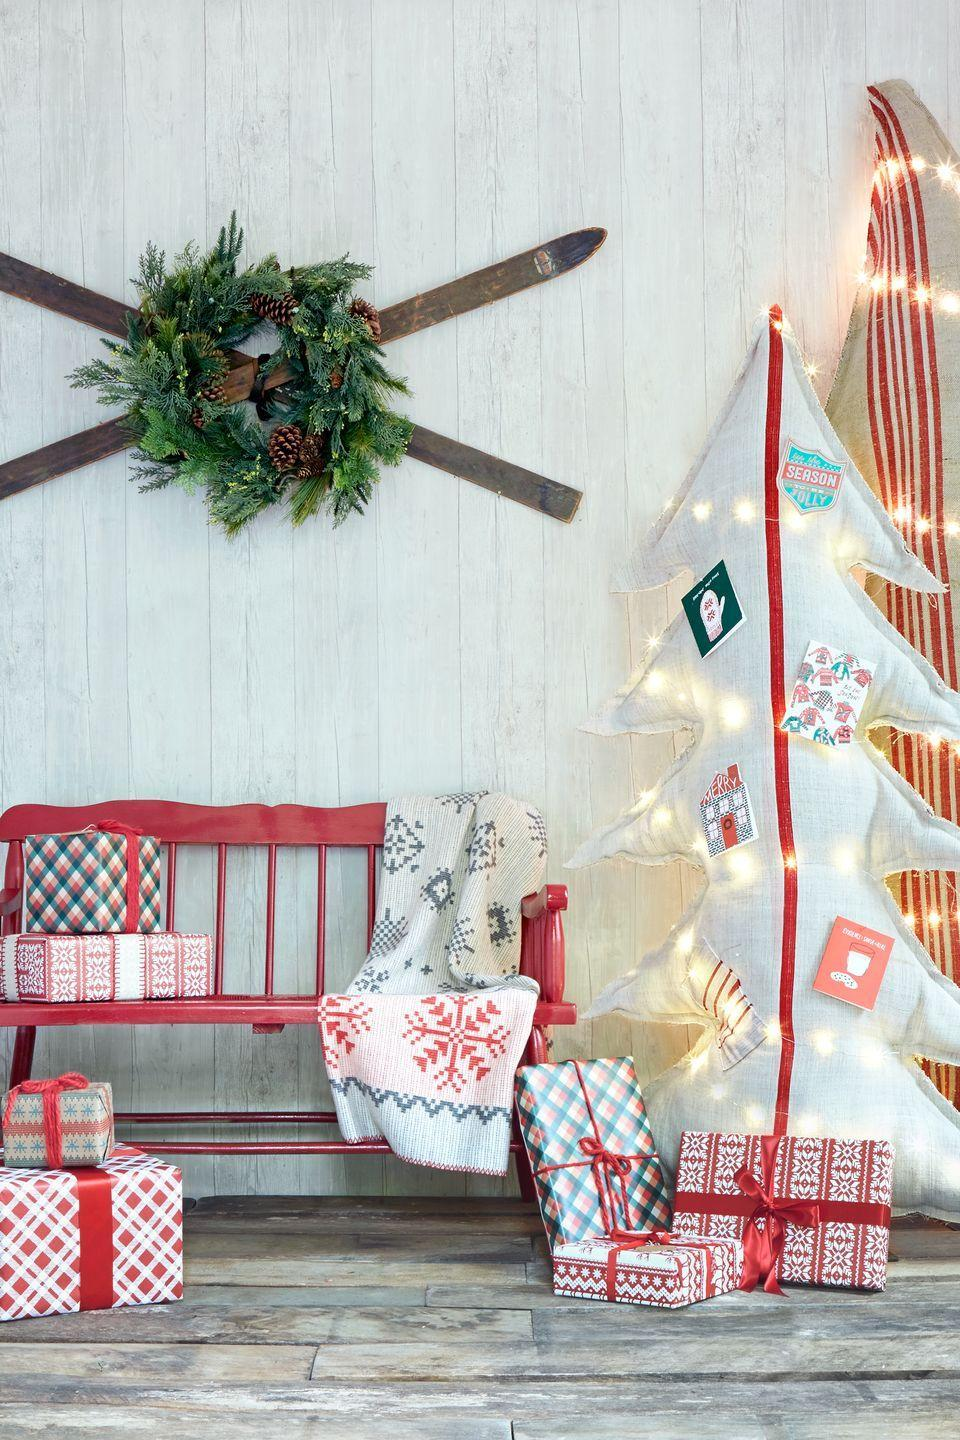 """<p>Hang old wooden skis (available on eBay) in an X, then spruce up a display with a festive wreath.</p><p><a class=""""link rapid-noclick-resp"""" href=""""https://www.amazon.com/s/ref=nb_sb_noss_2?url=search-alias%3Dgarden&field-keywords=christmas+wreath&rh=n%3A1055398%2Ck%3Achristmas+wreath&tag=syn-yahoo-20&ascsubtag=%5Bartid%7C10050.g.1247%5Bsrc%7Cyahoo-us"""" rel=""""nofollow noopener"""" target=""""_blank"""" data-ylk=""""slk:SHOP CHRISTMAS WREATHS"""">SHOP CHRISTMAS WREATHS</a> </p>"""